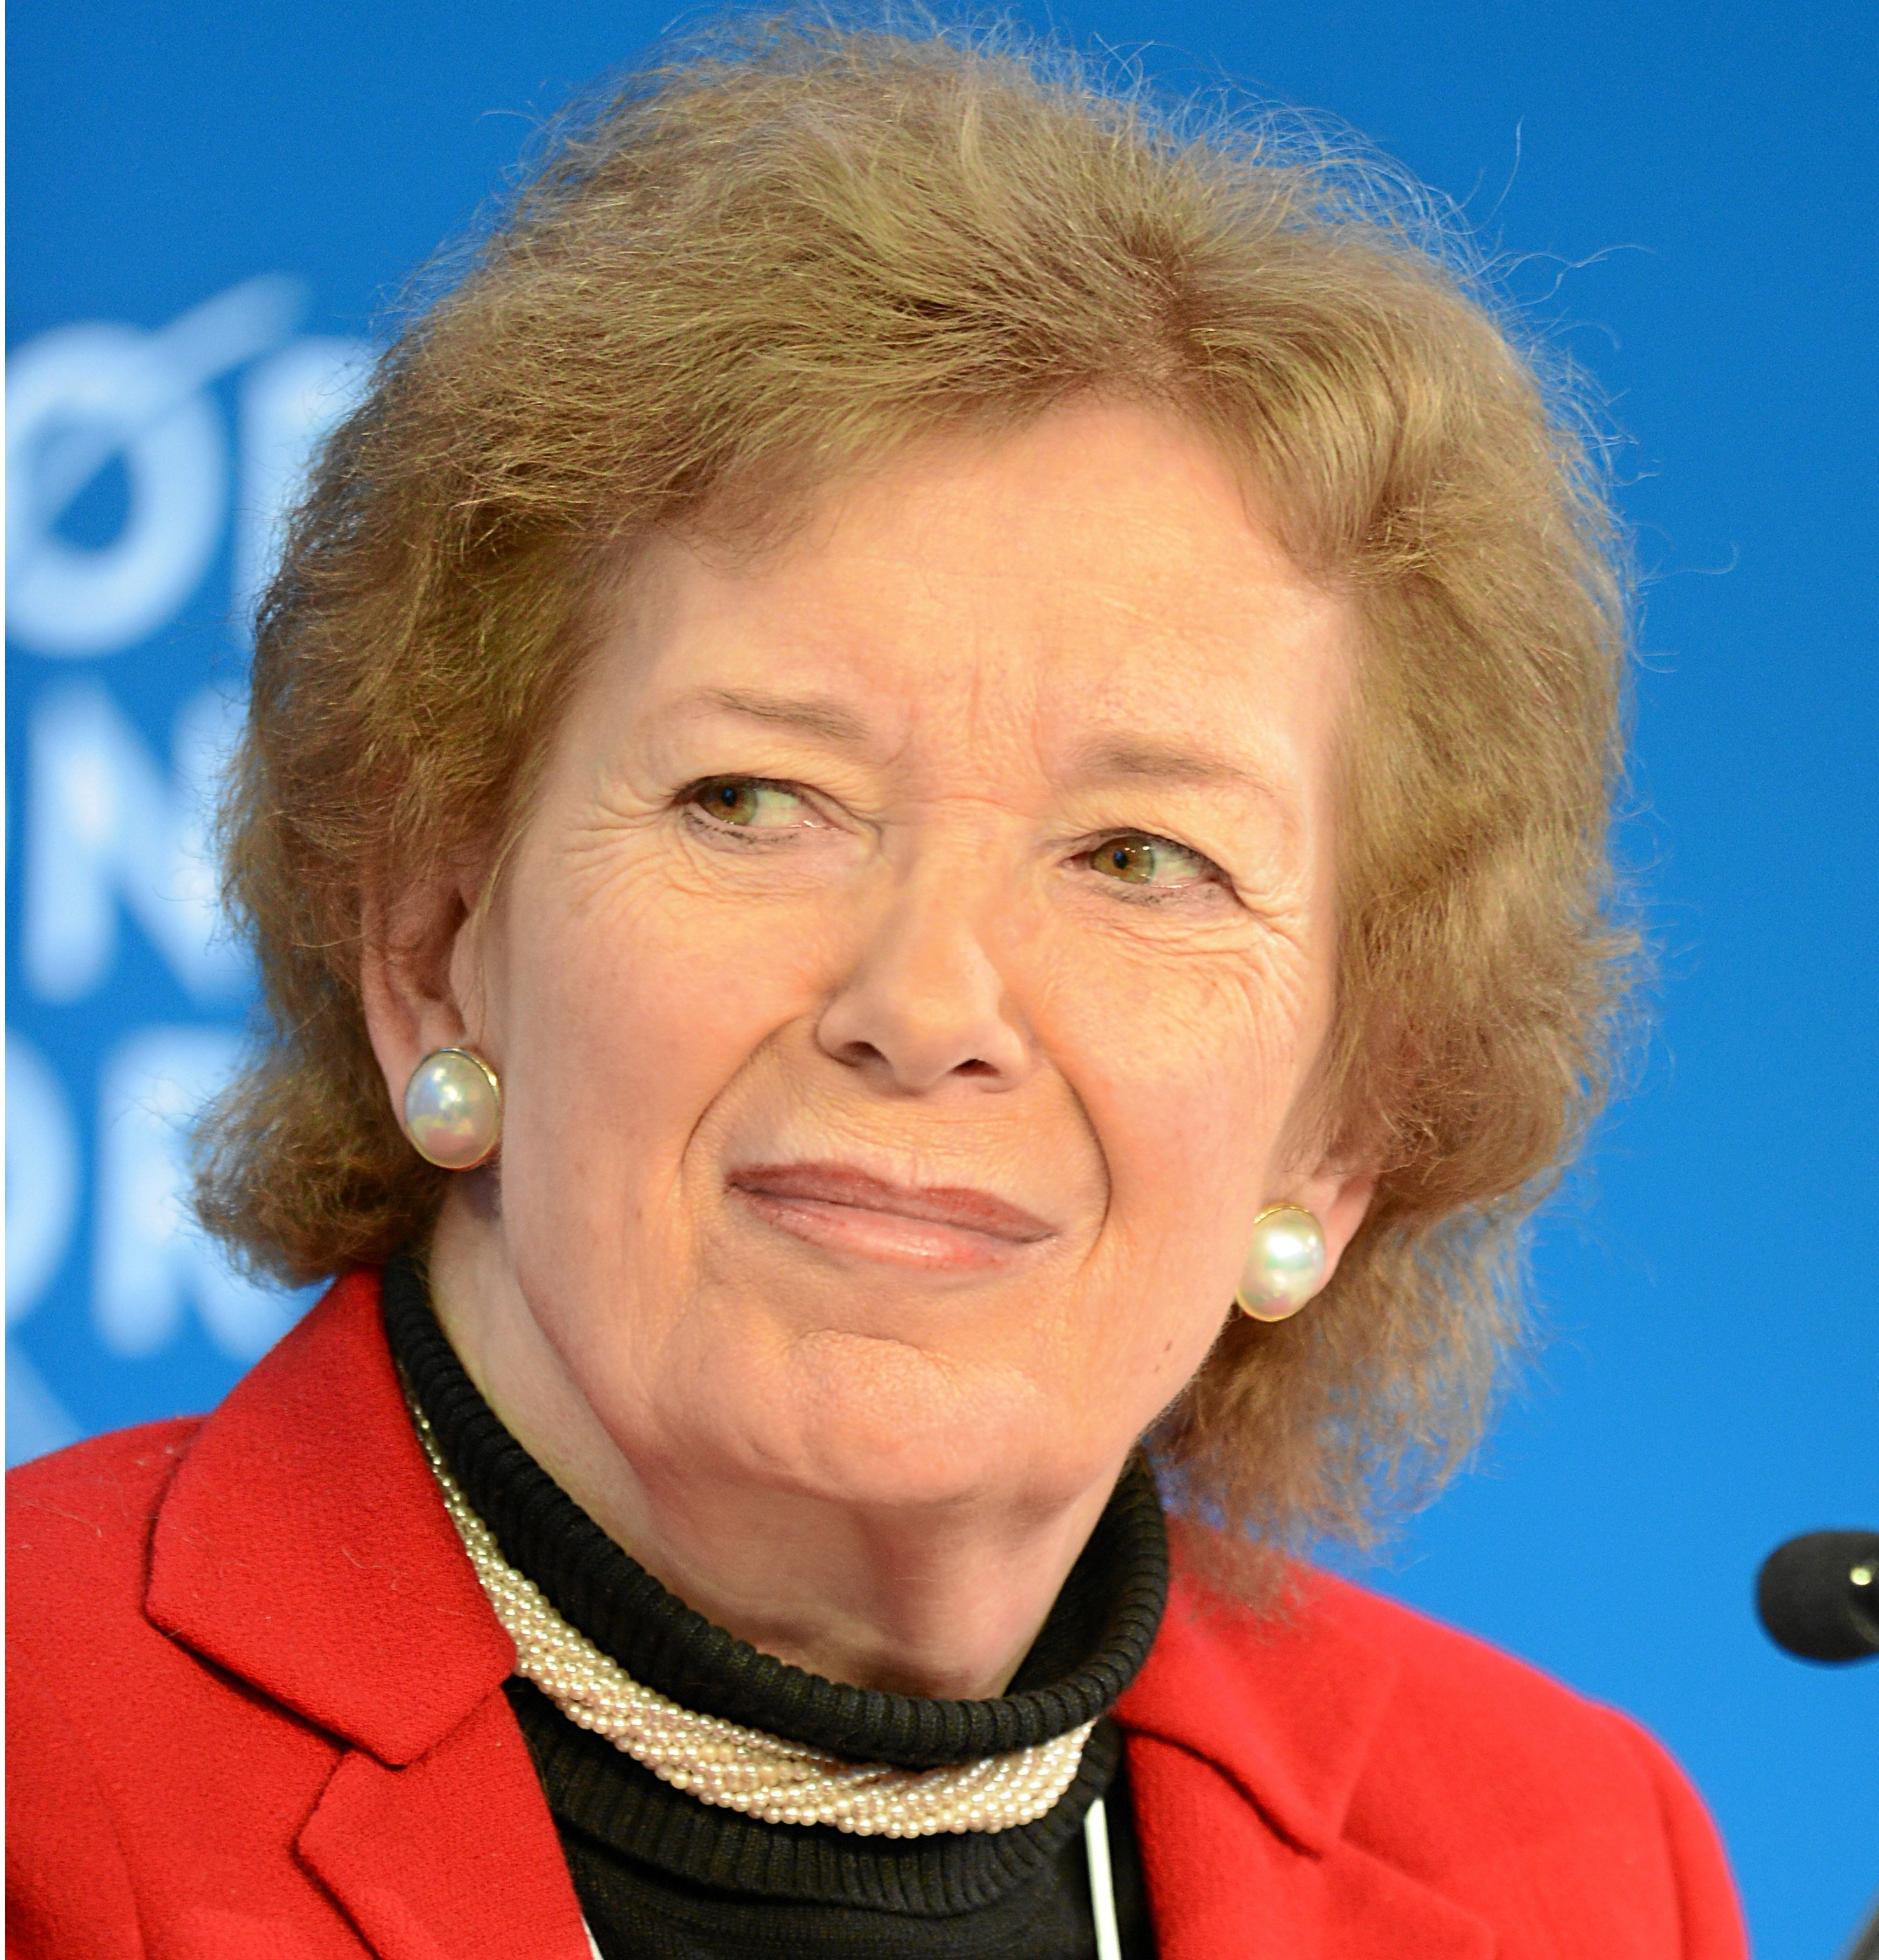 DAVOS/SWITZERLAND, 26JAN13 - Mary Robinson, President, Mary Robinson Foundation-Climate Justice, Ireland; Global Agenda Council on Human Rights speaks during the Session 'The Moral Economy: From Social Contract to Social Covenant' at the Annual Meeting 2013 of the World Economic Forum in Davos, Switzerland, January 26, 2013. Copyright by World Economic Forum swiss-image.ch/Photo Michael Wuertenberg